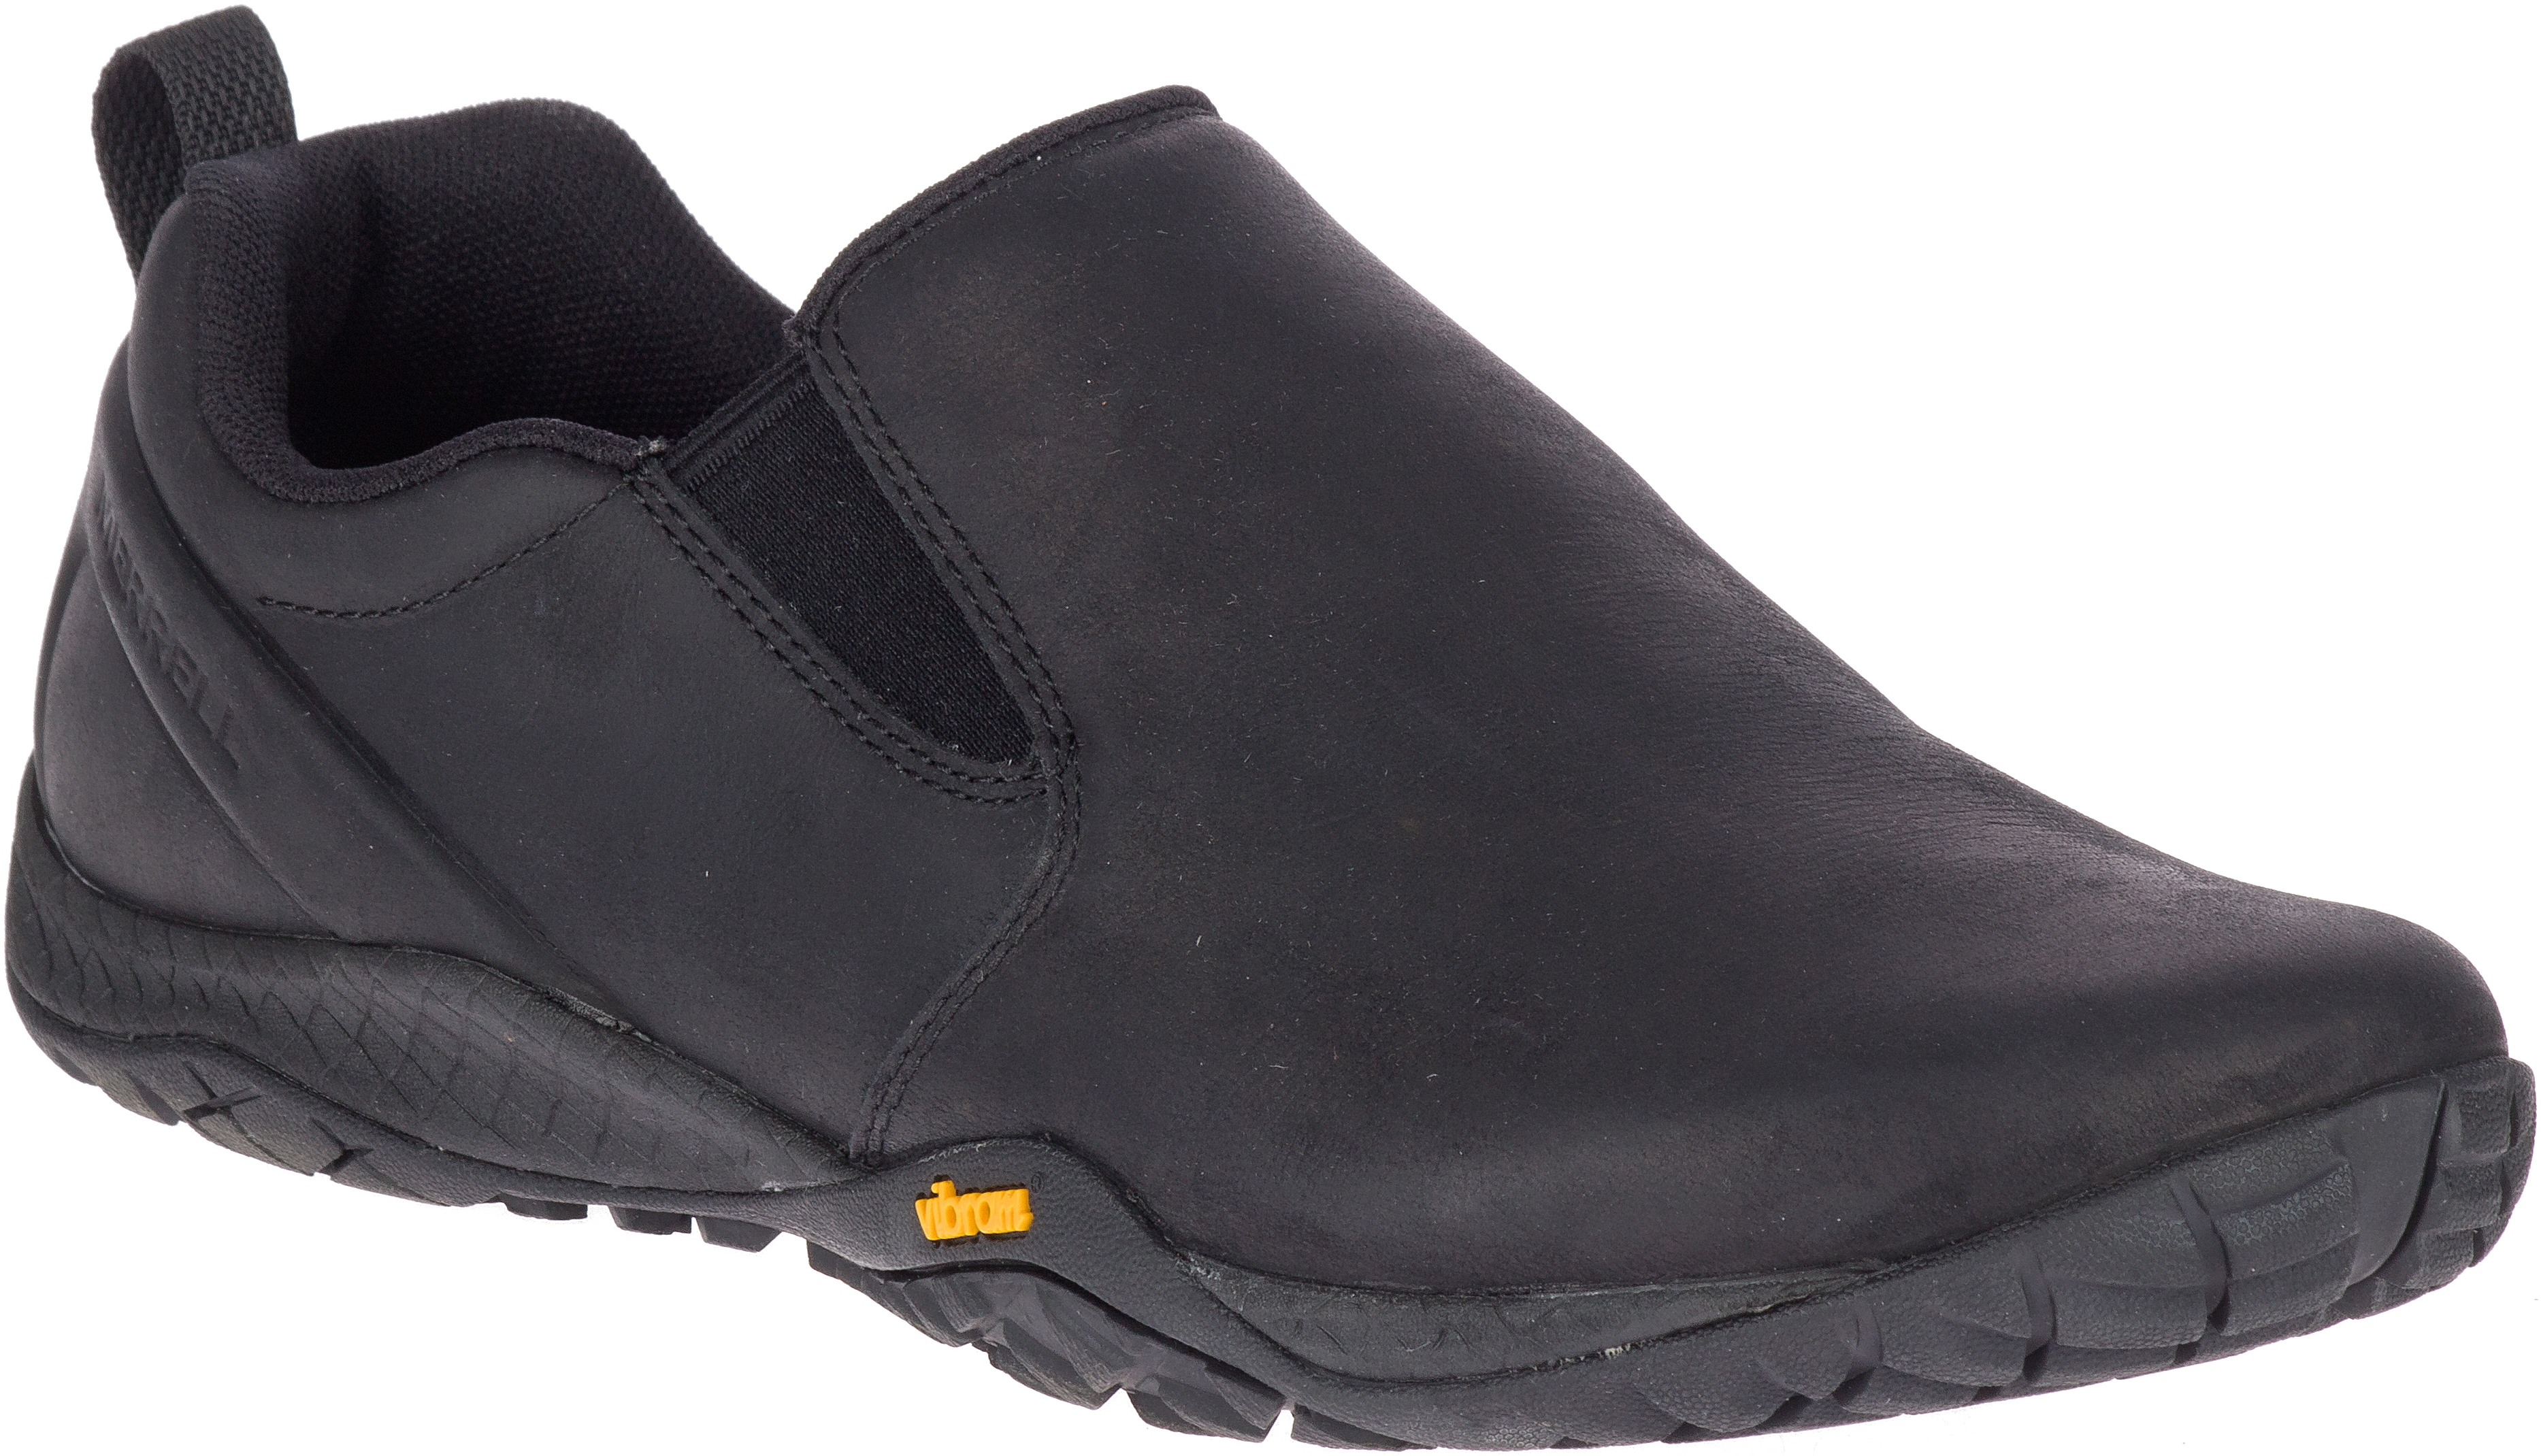 Trail Glove 4 Luna Slip On, Black